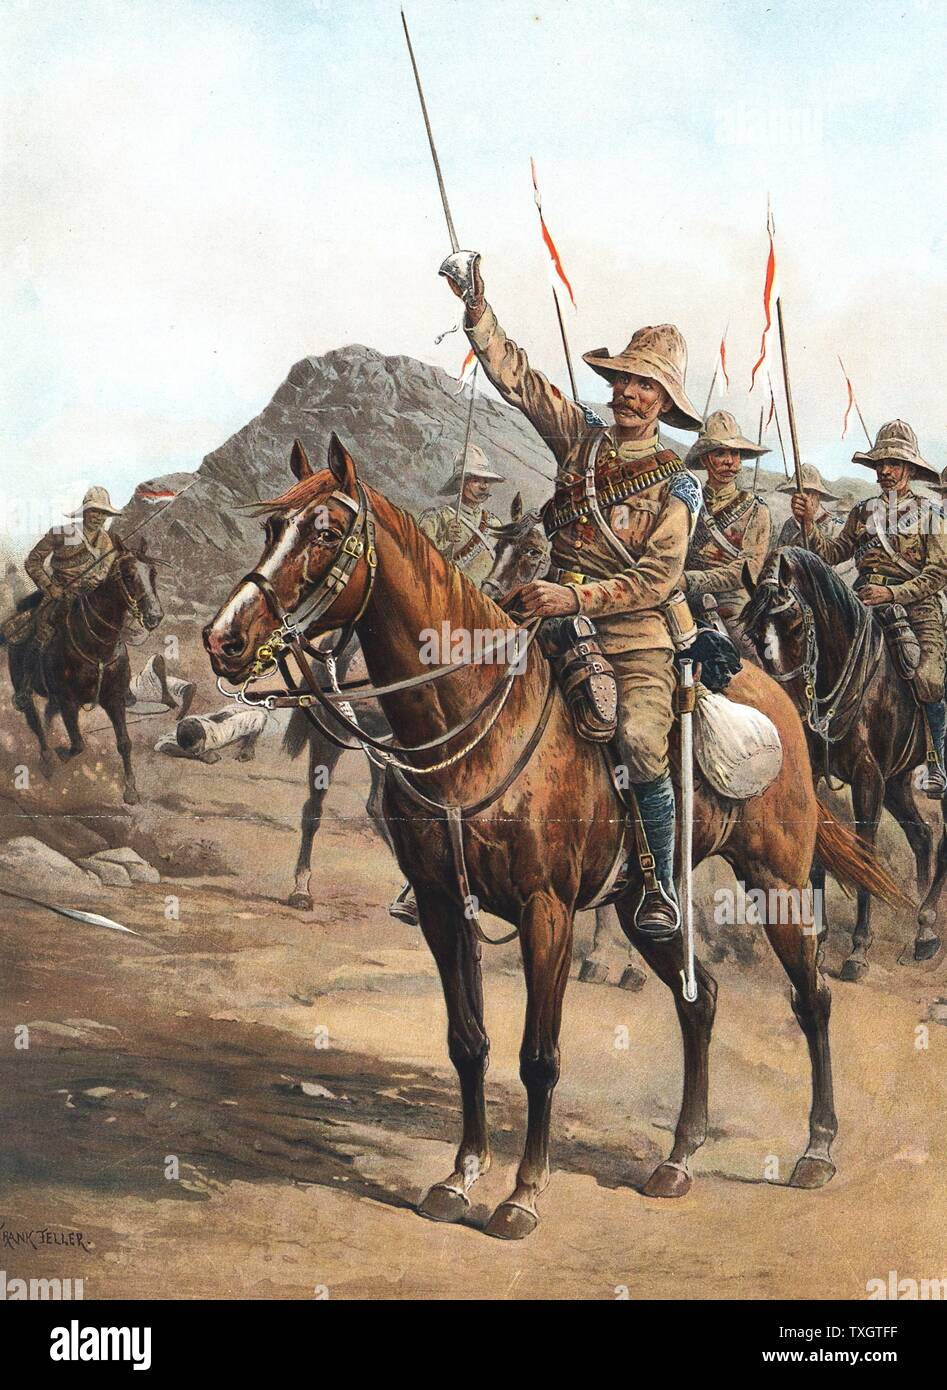 """Form Up, No. 2!  Form Up!"""" Rallying cry of Sergeant-Major Veysey after charge of 21st Lancers at Omdurman, 2 September 1898. British under Kitchener defeated 'Abd Allah (al-Kalifah). Sudan Chromolithograph Stock Photo"""